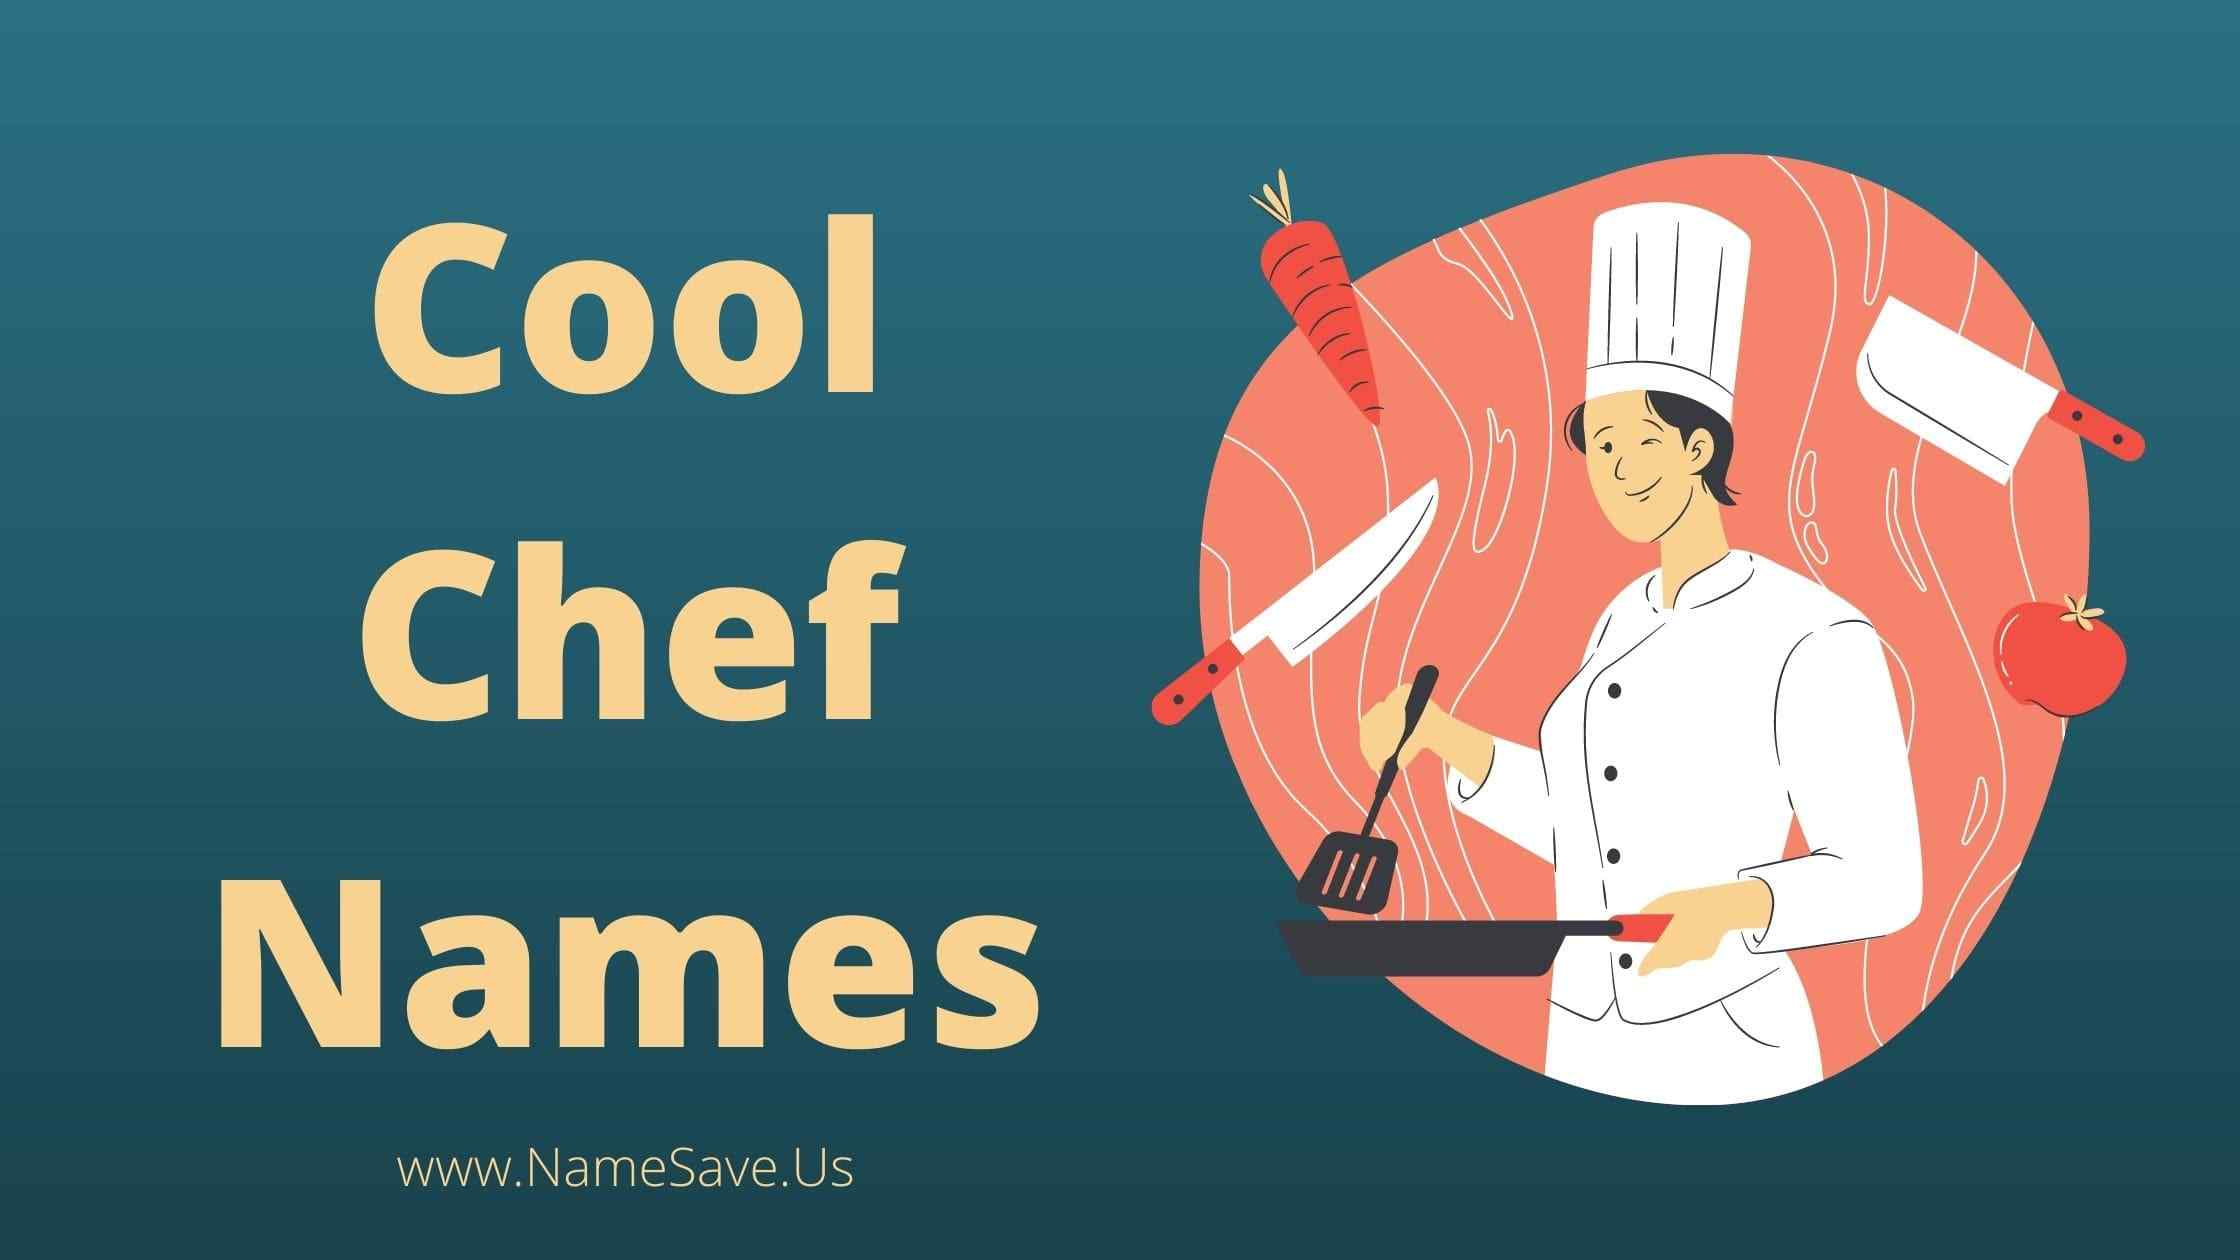 Cool Chef Names